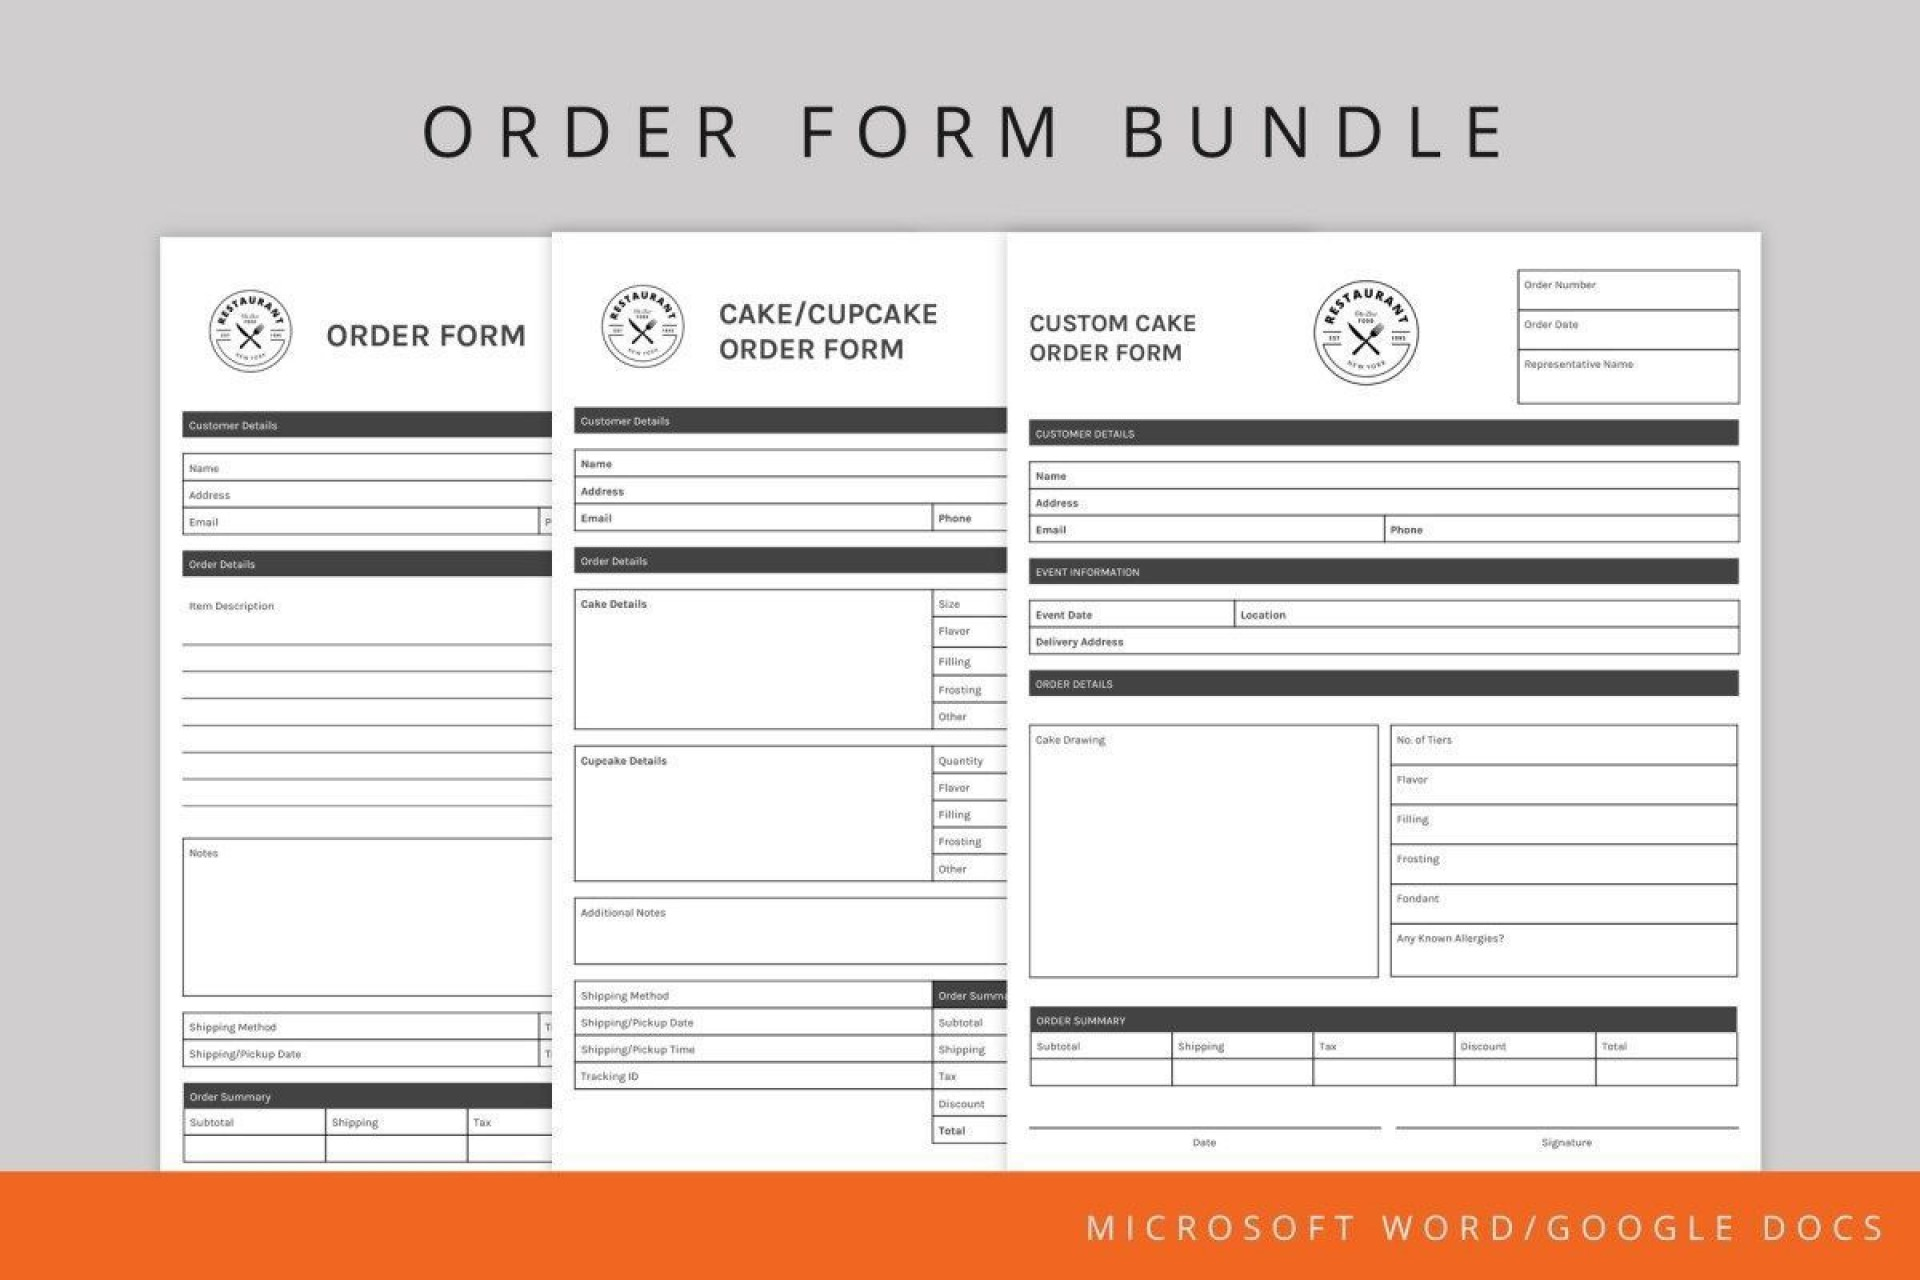 002 Stupendou Food Order Form Template Word High Def 1920